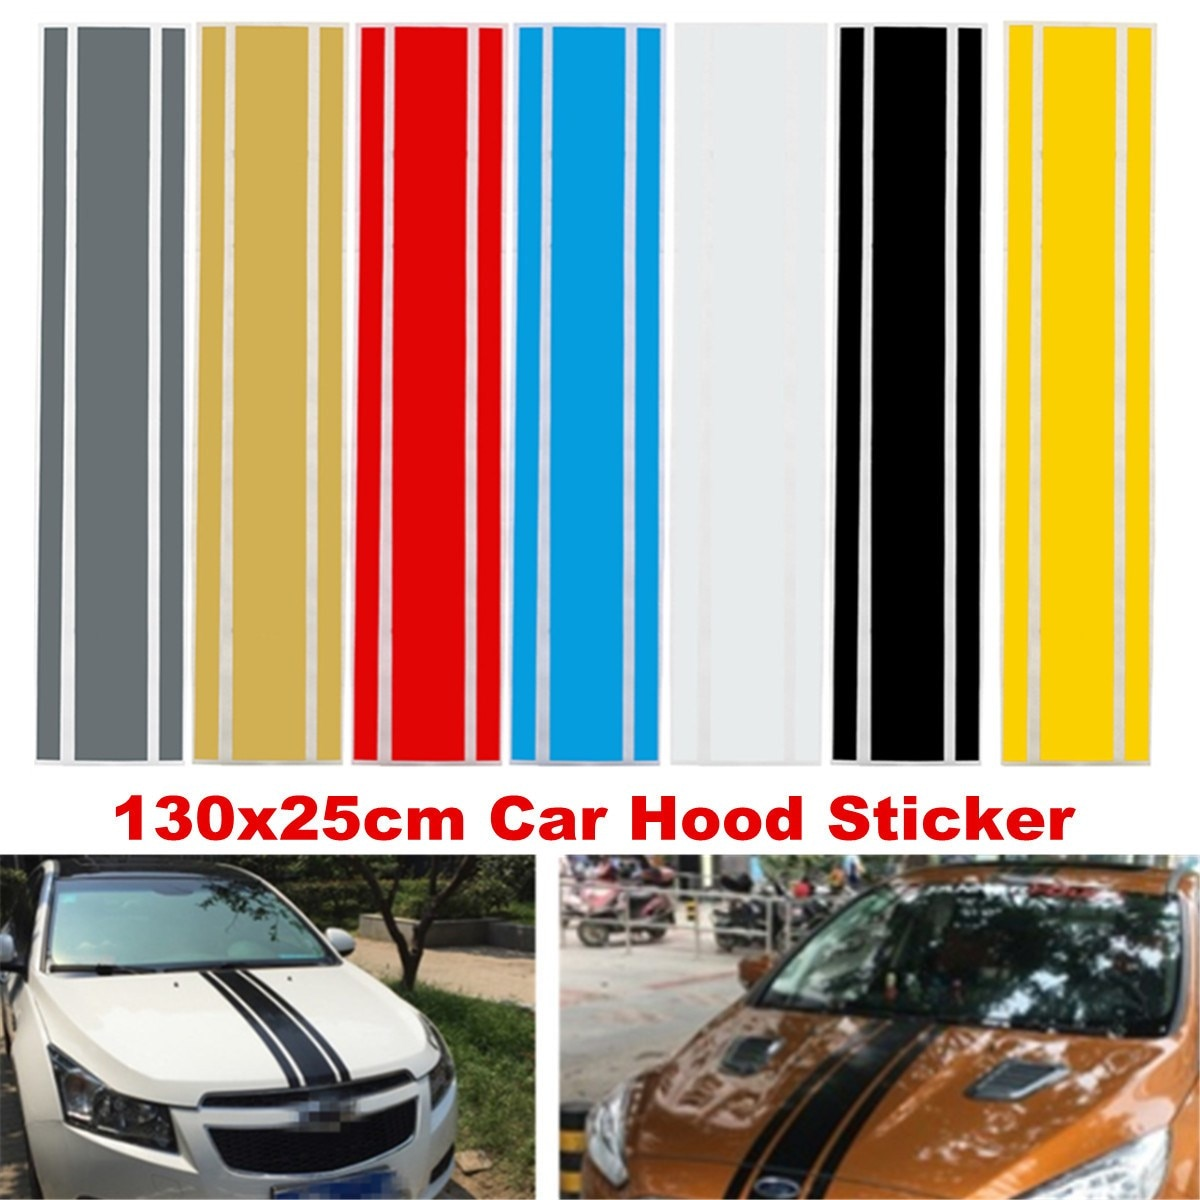 130cm x 25cm Car-Styling Auto SUV Decal Hood Scratched Sticker Engine Cover  Vinyl DIY Decor Stripe